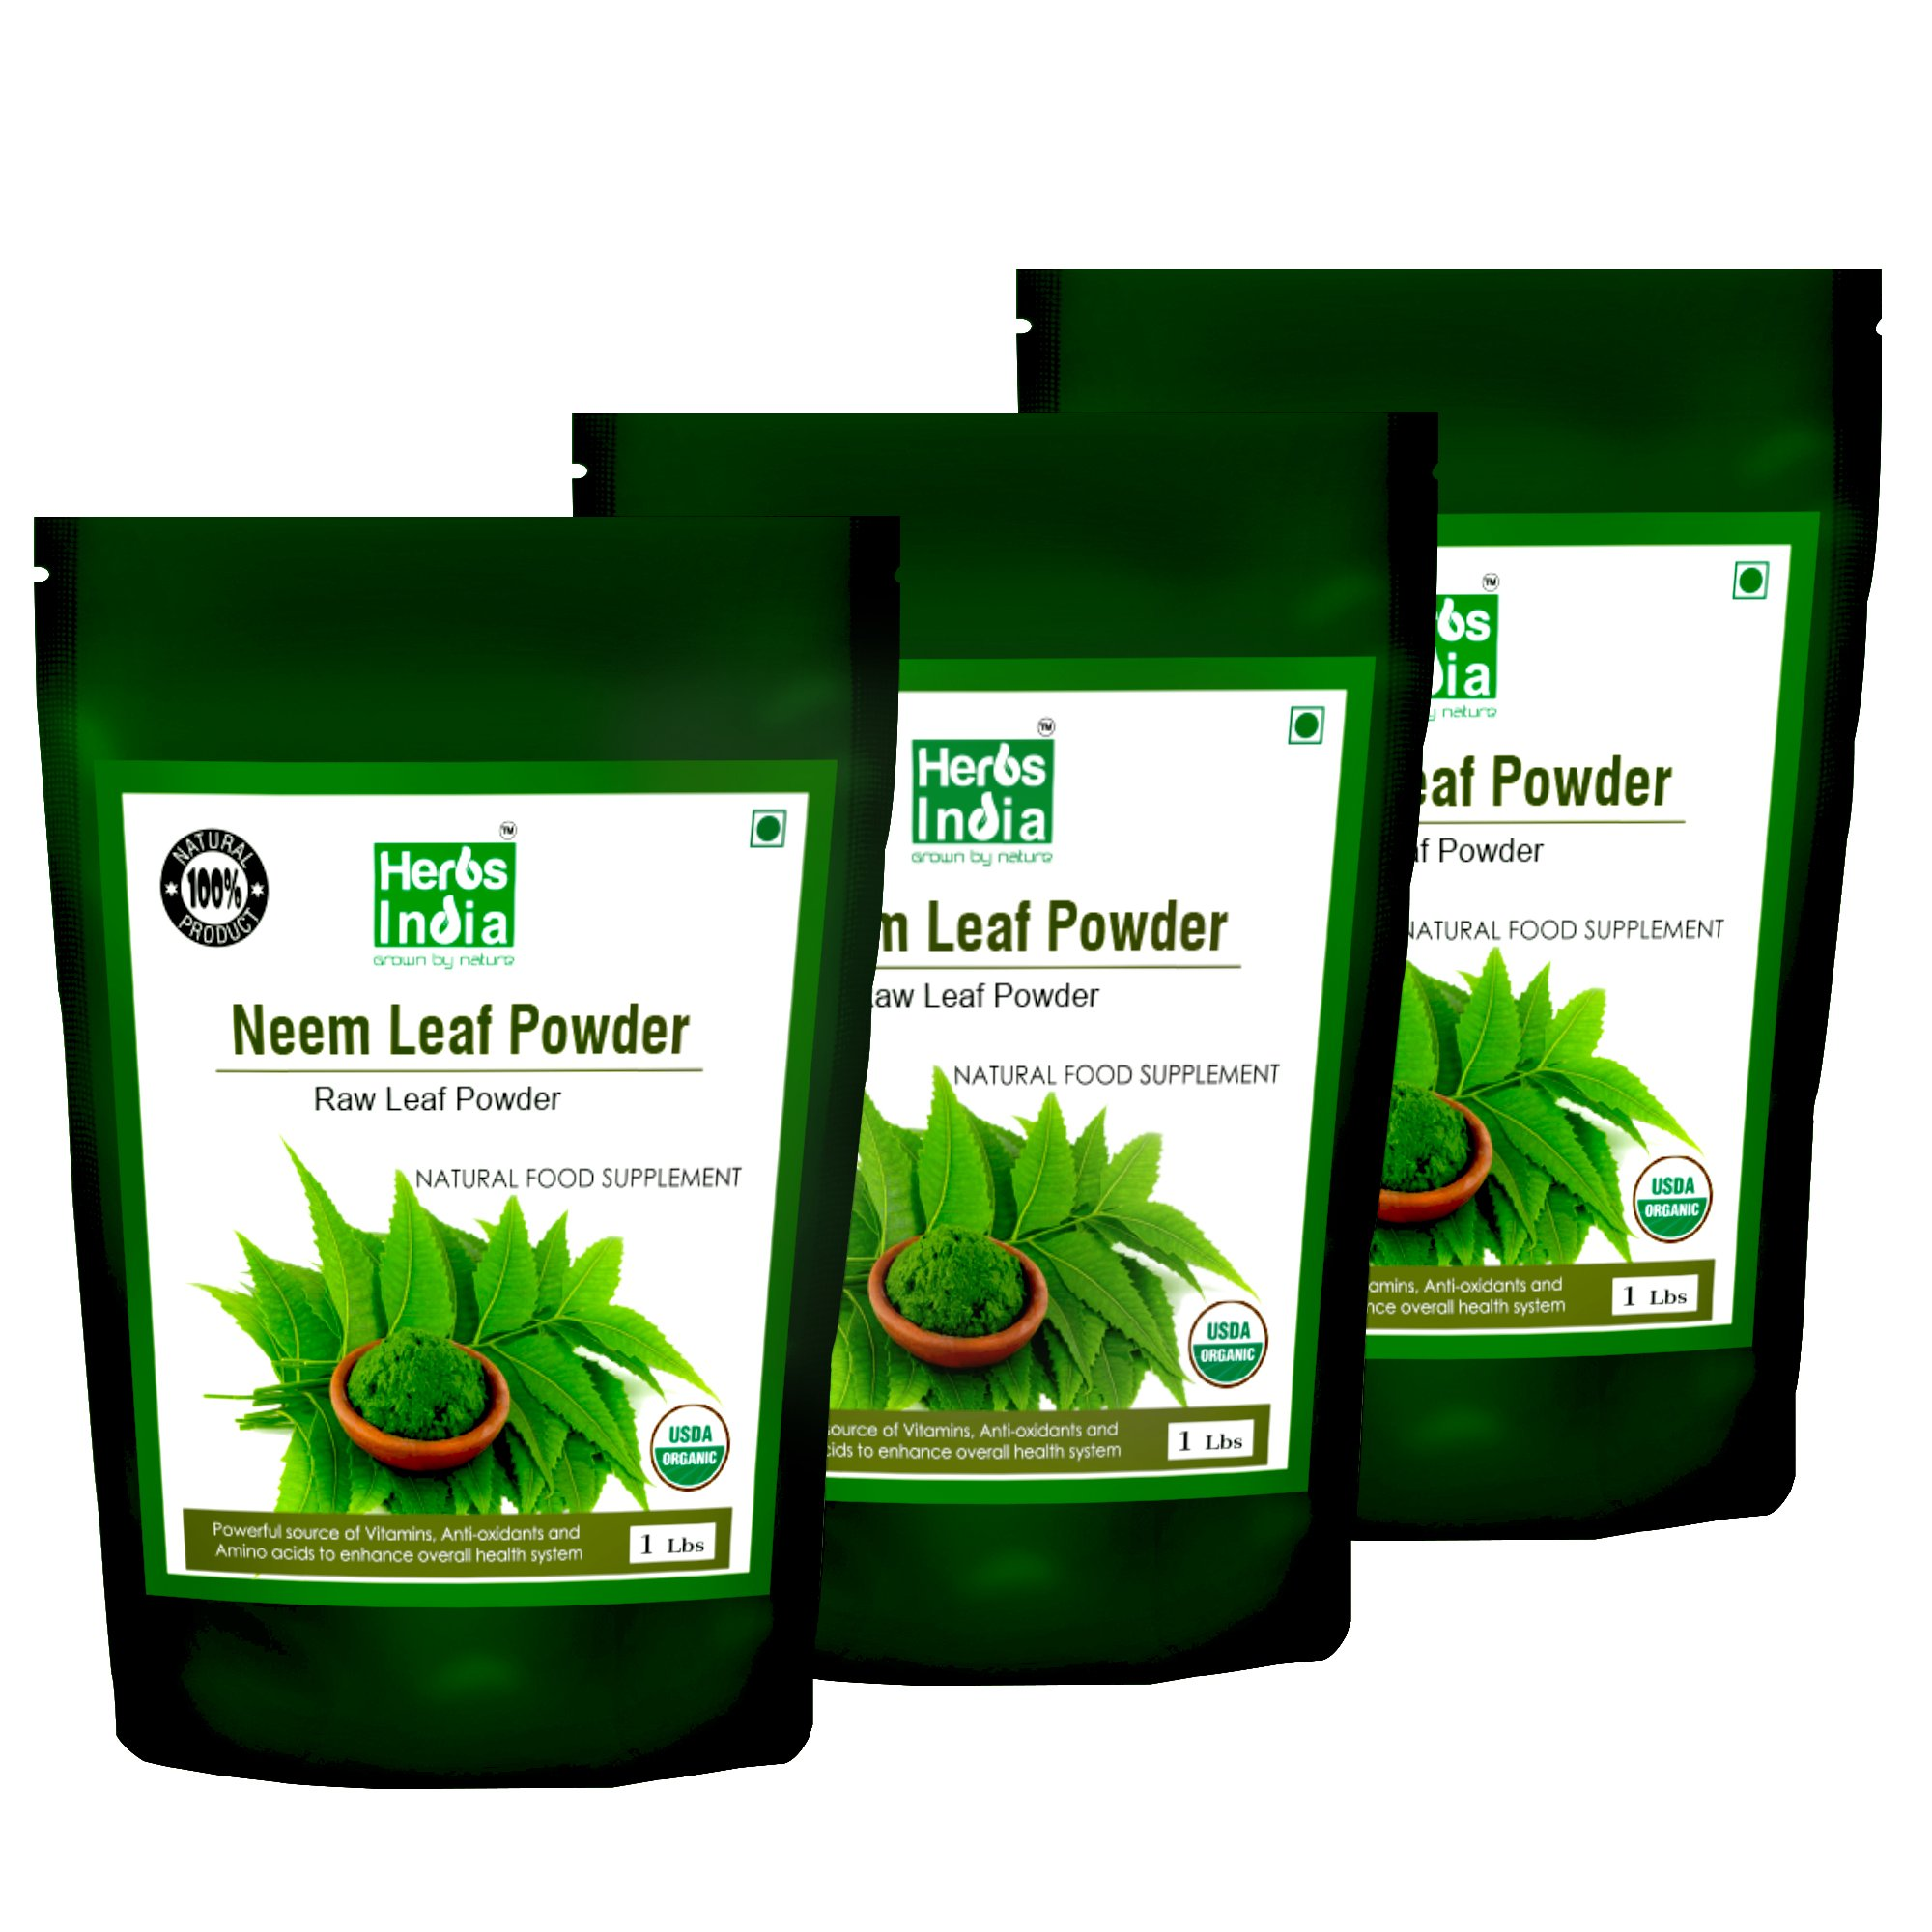 Neem Powder - USDA Certified Organic. No Preservative and all Natural - Herbs India (Pack of 3 X 1 Pound)